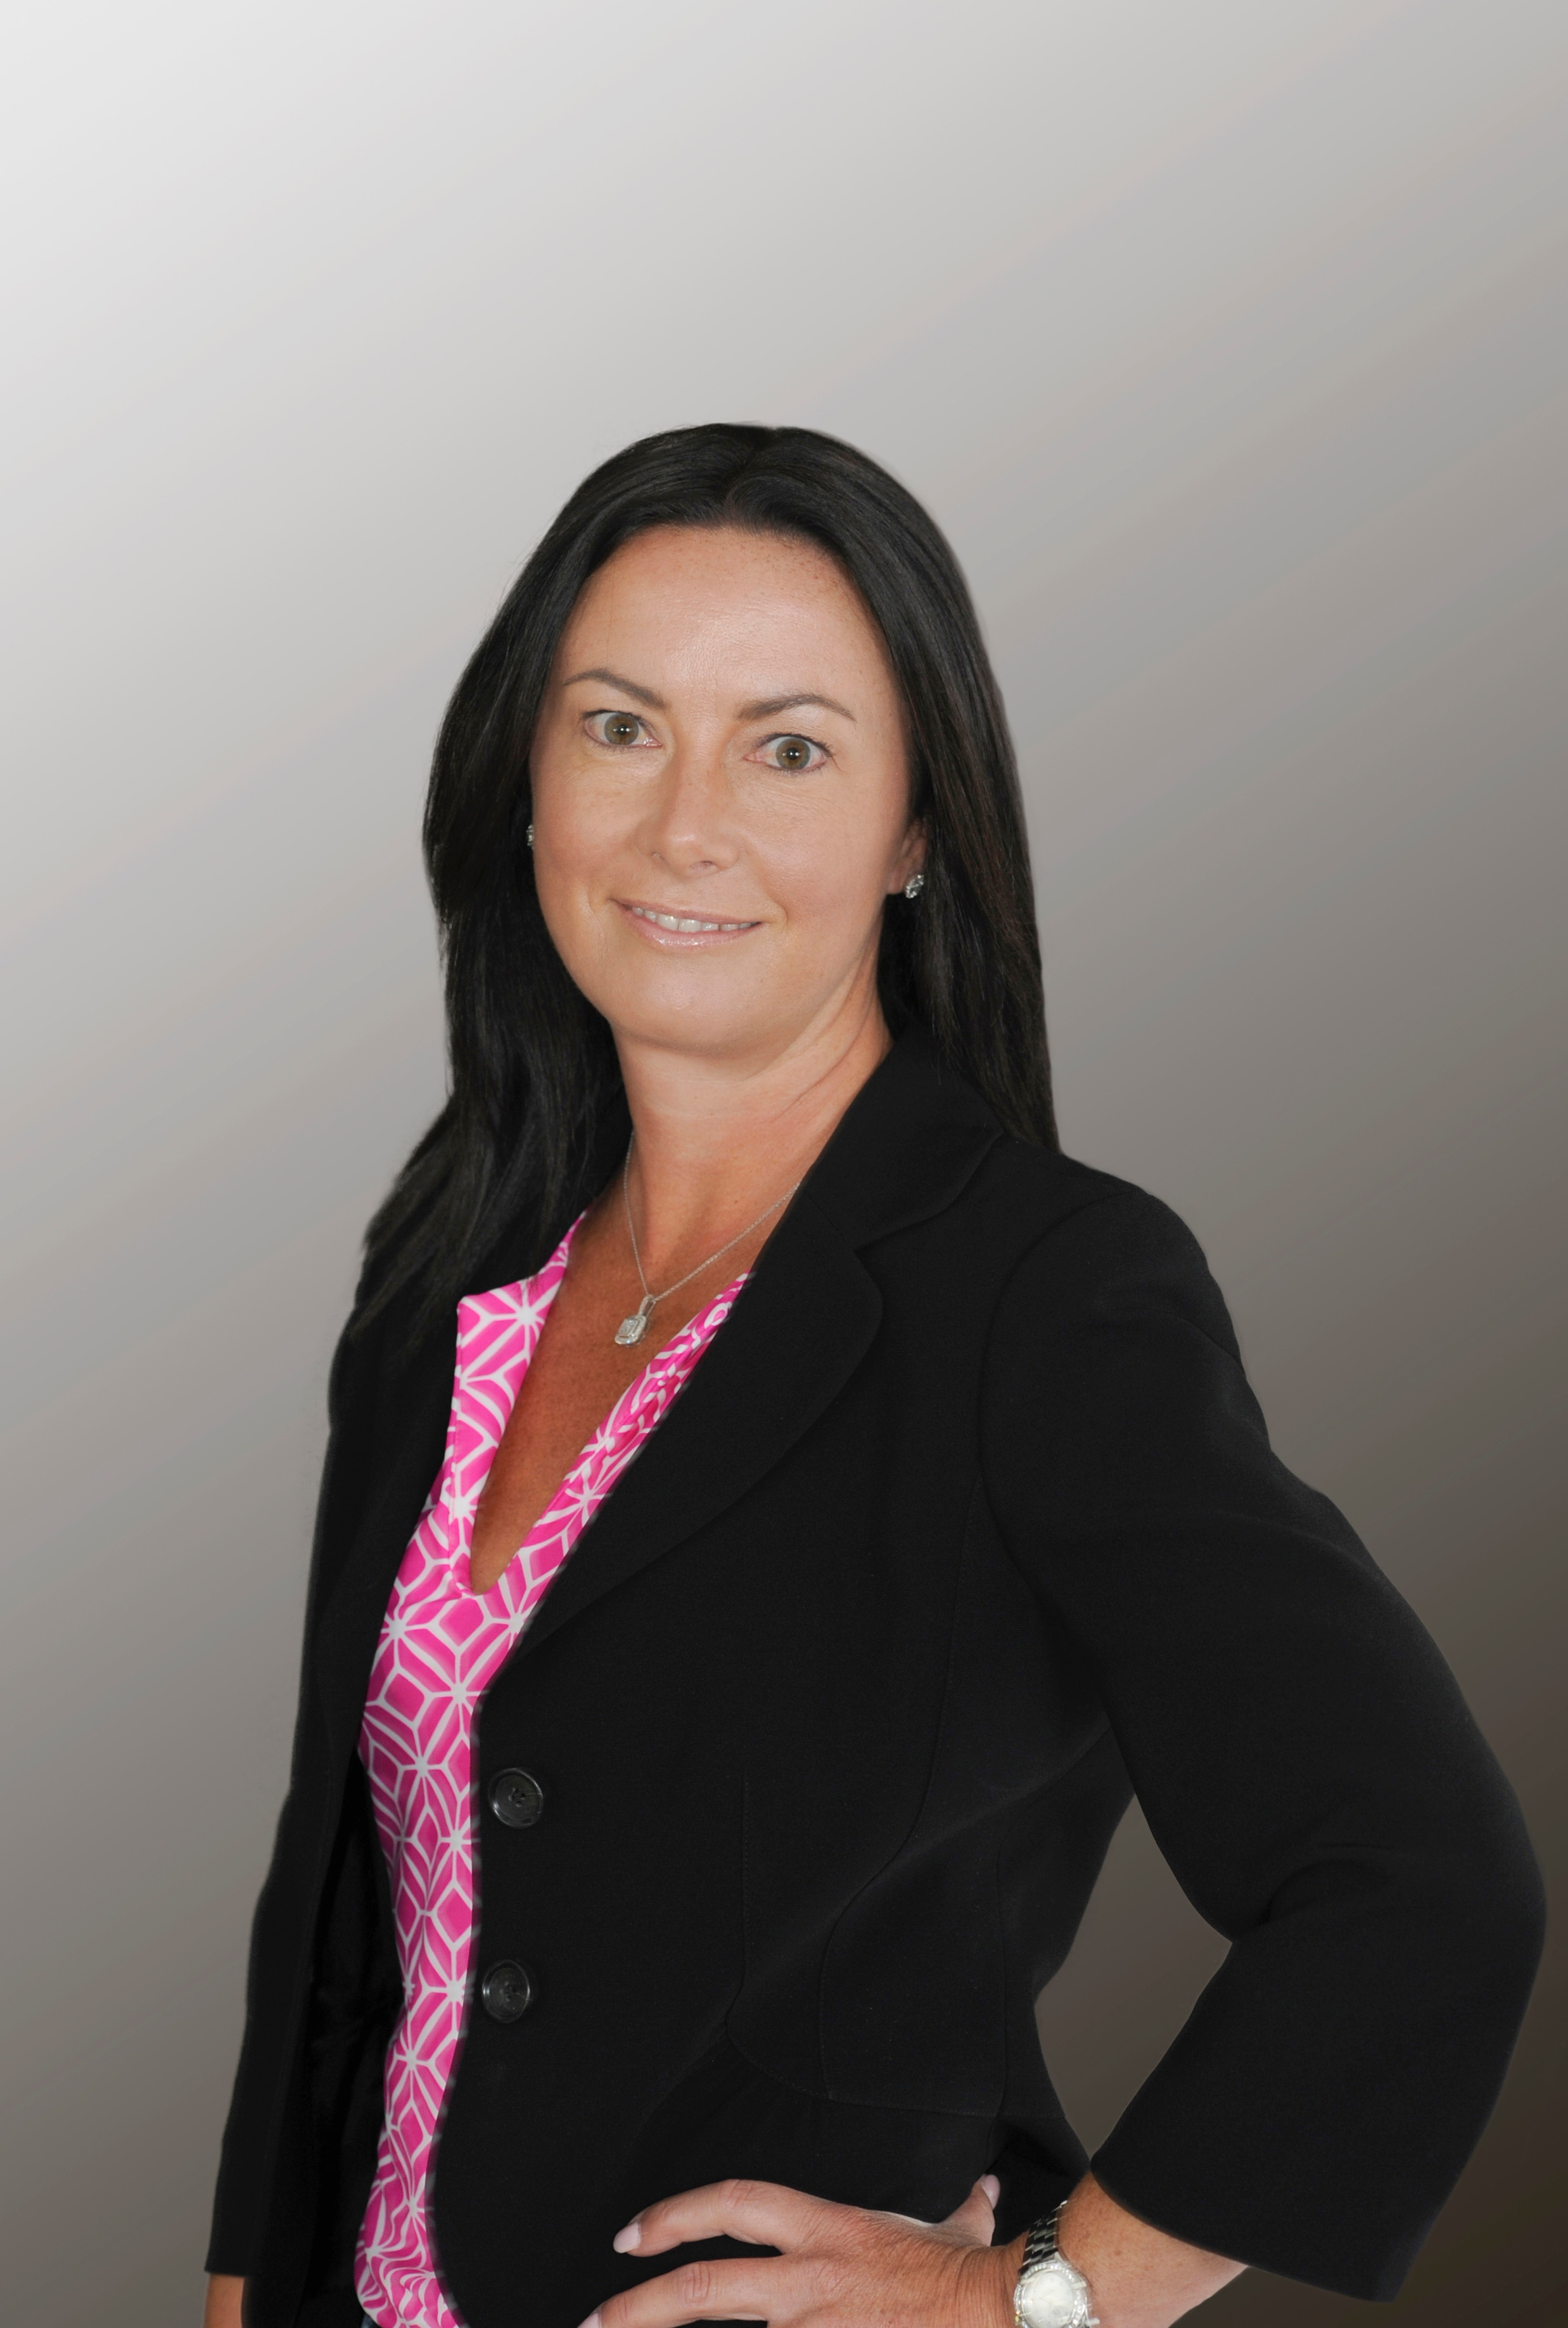 Kerri Ford joins CW Services, sister company to Cushman & Wakefield